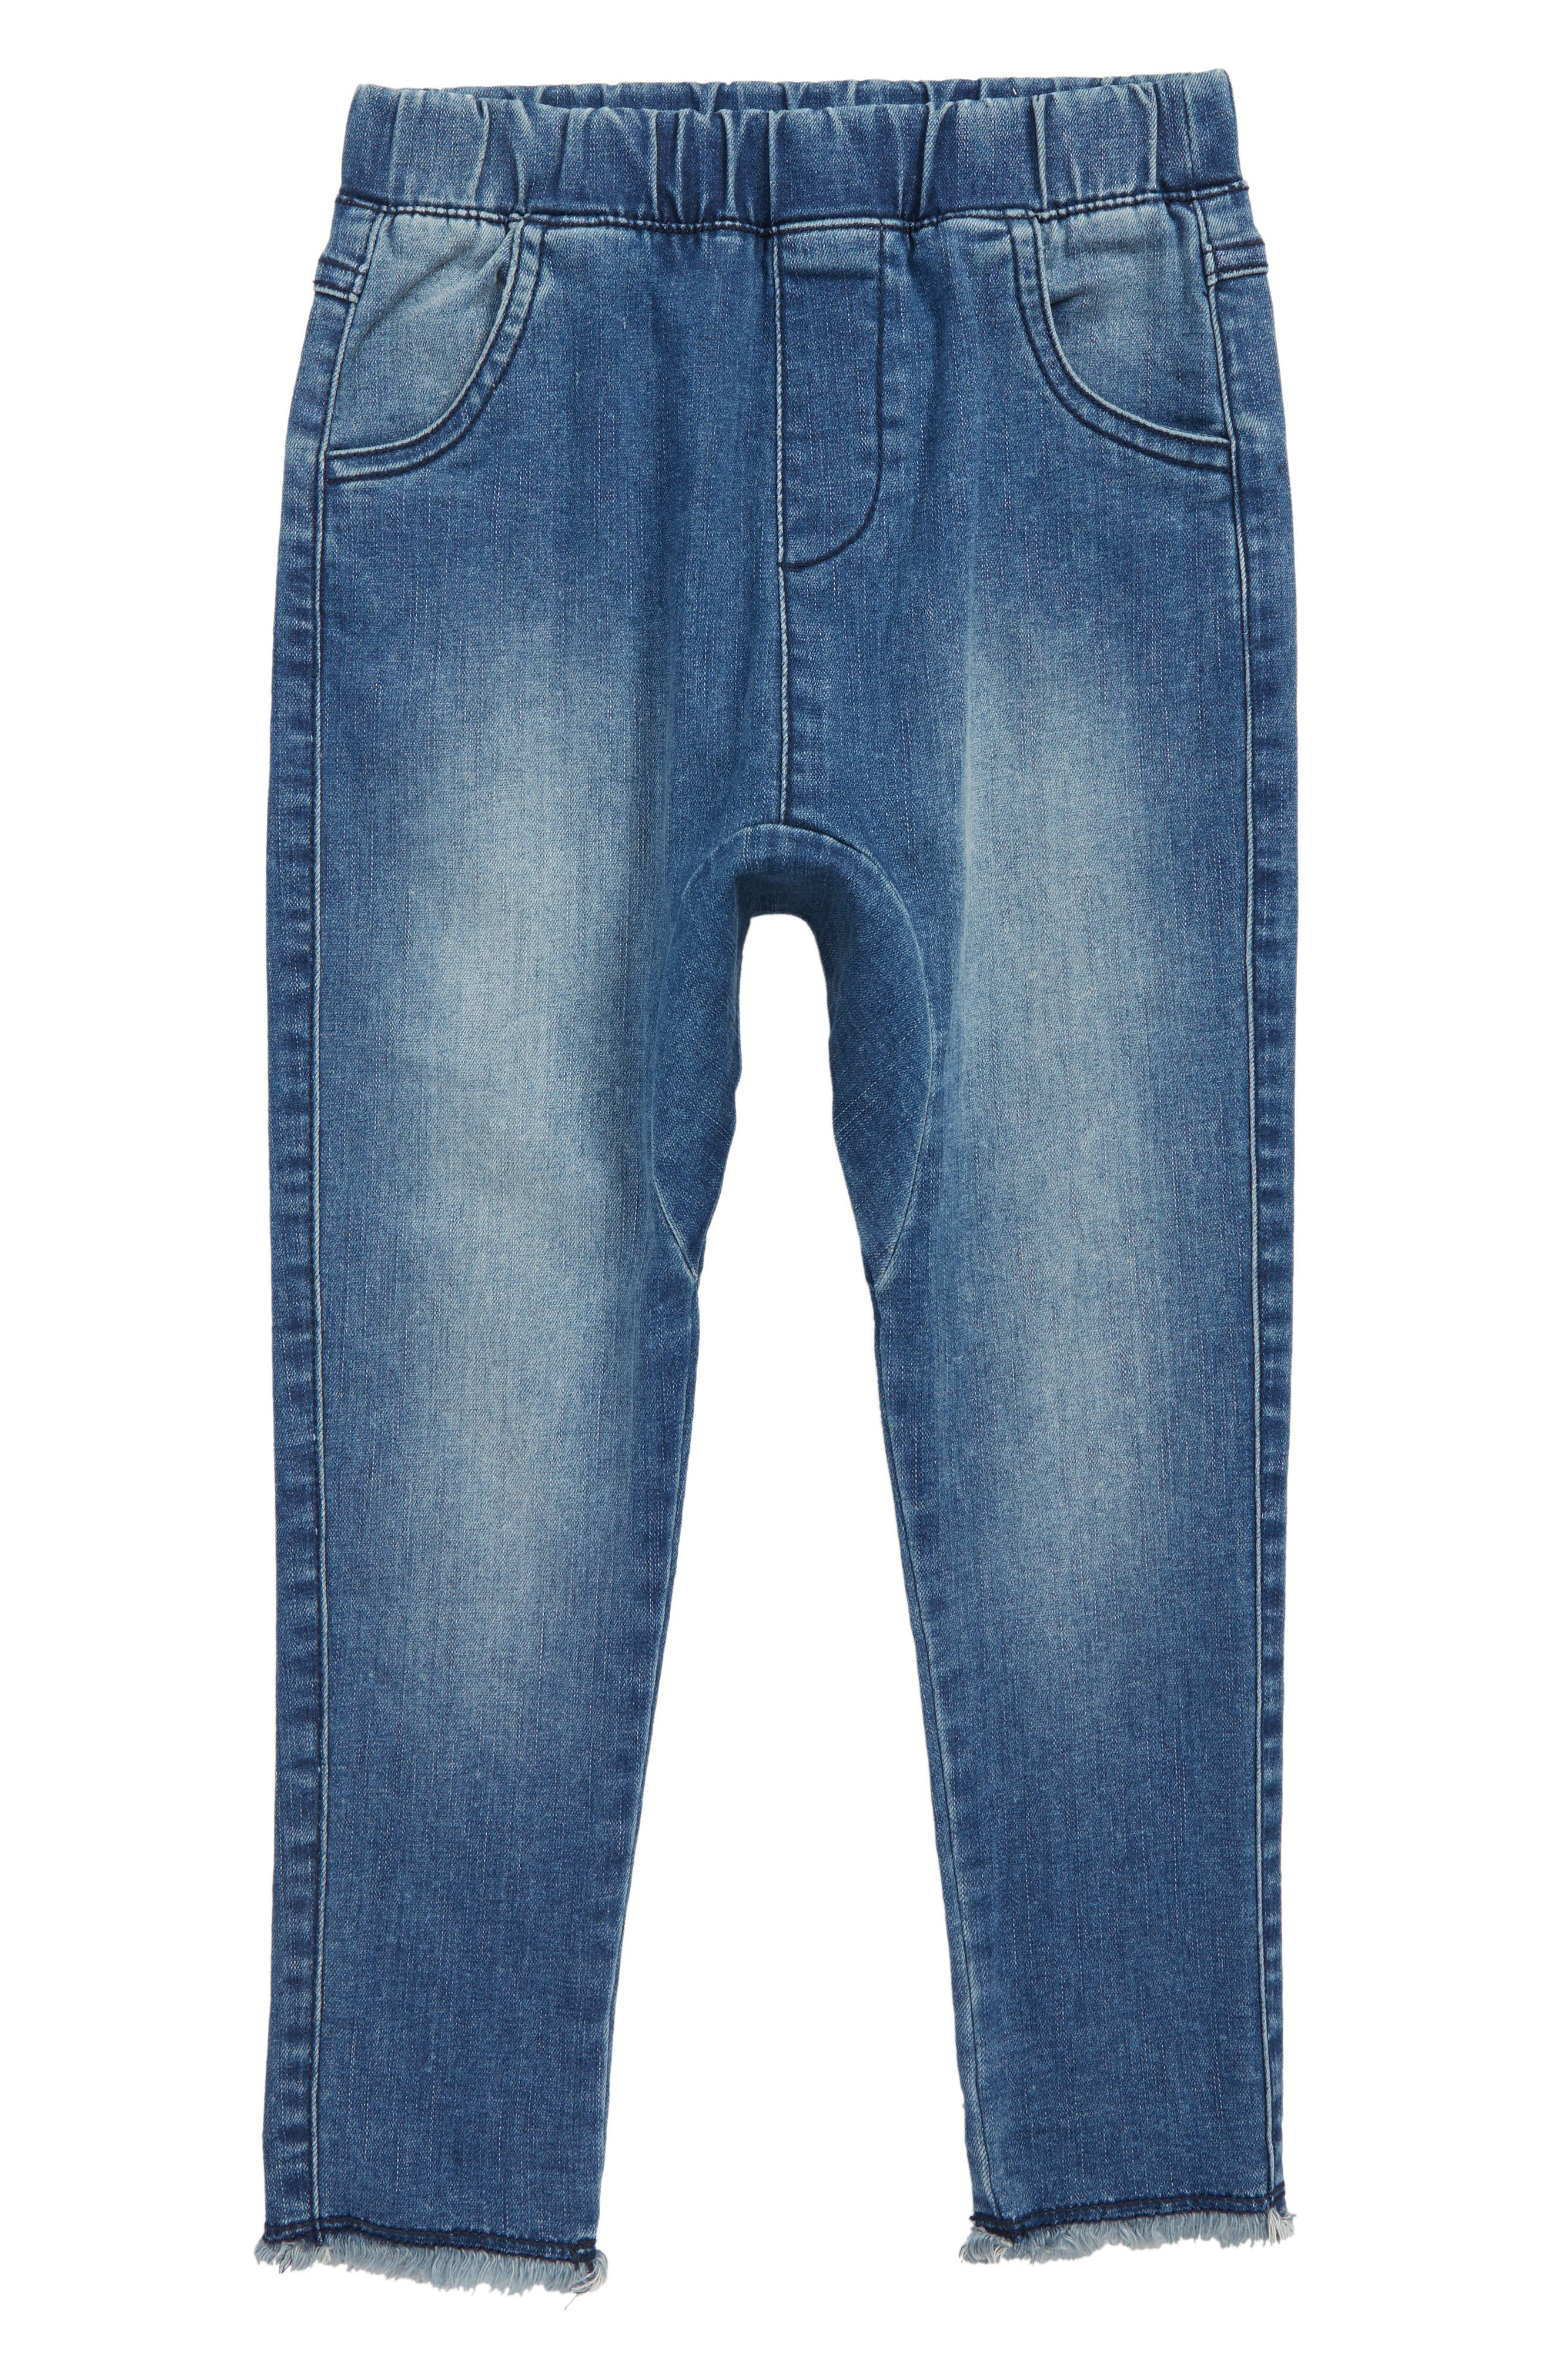 Shadow Patch Jeans,                             Main thumbnail 1, color,                             BLUE SHINE WASH